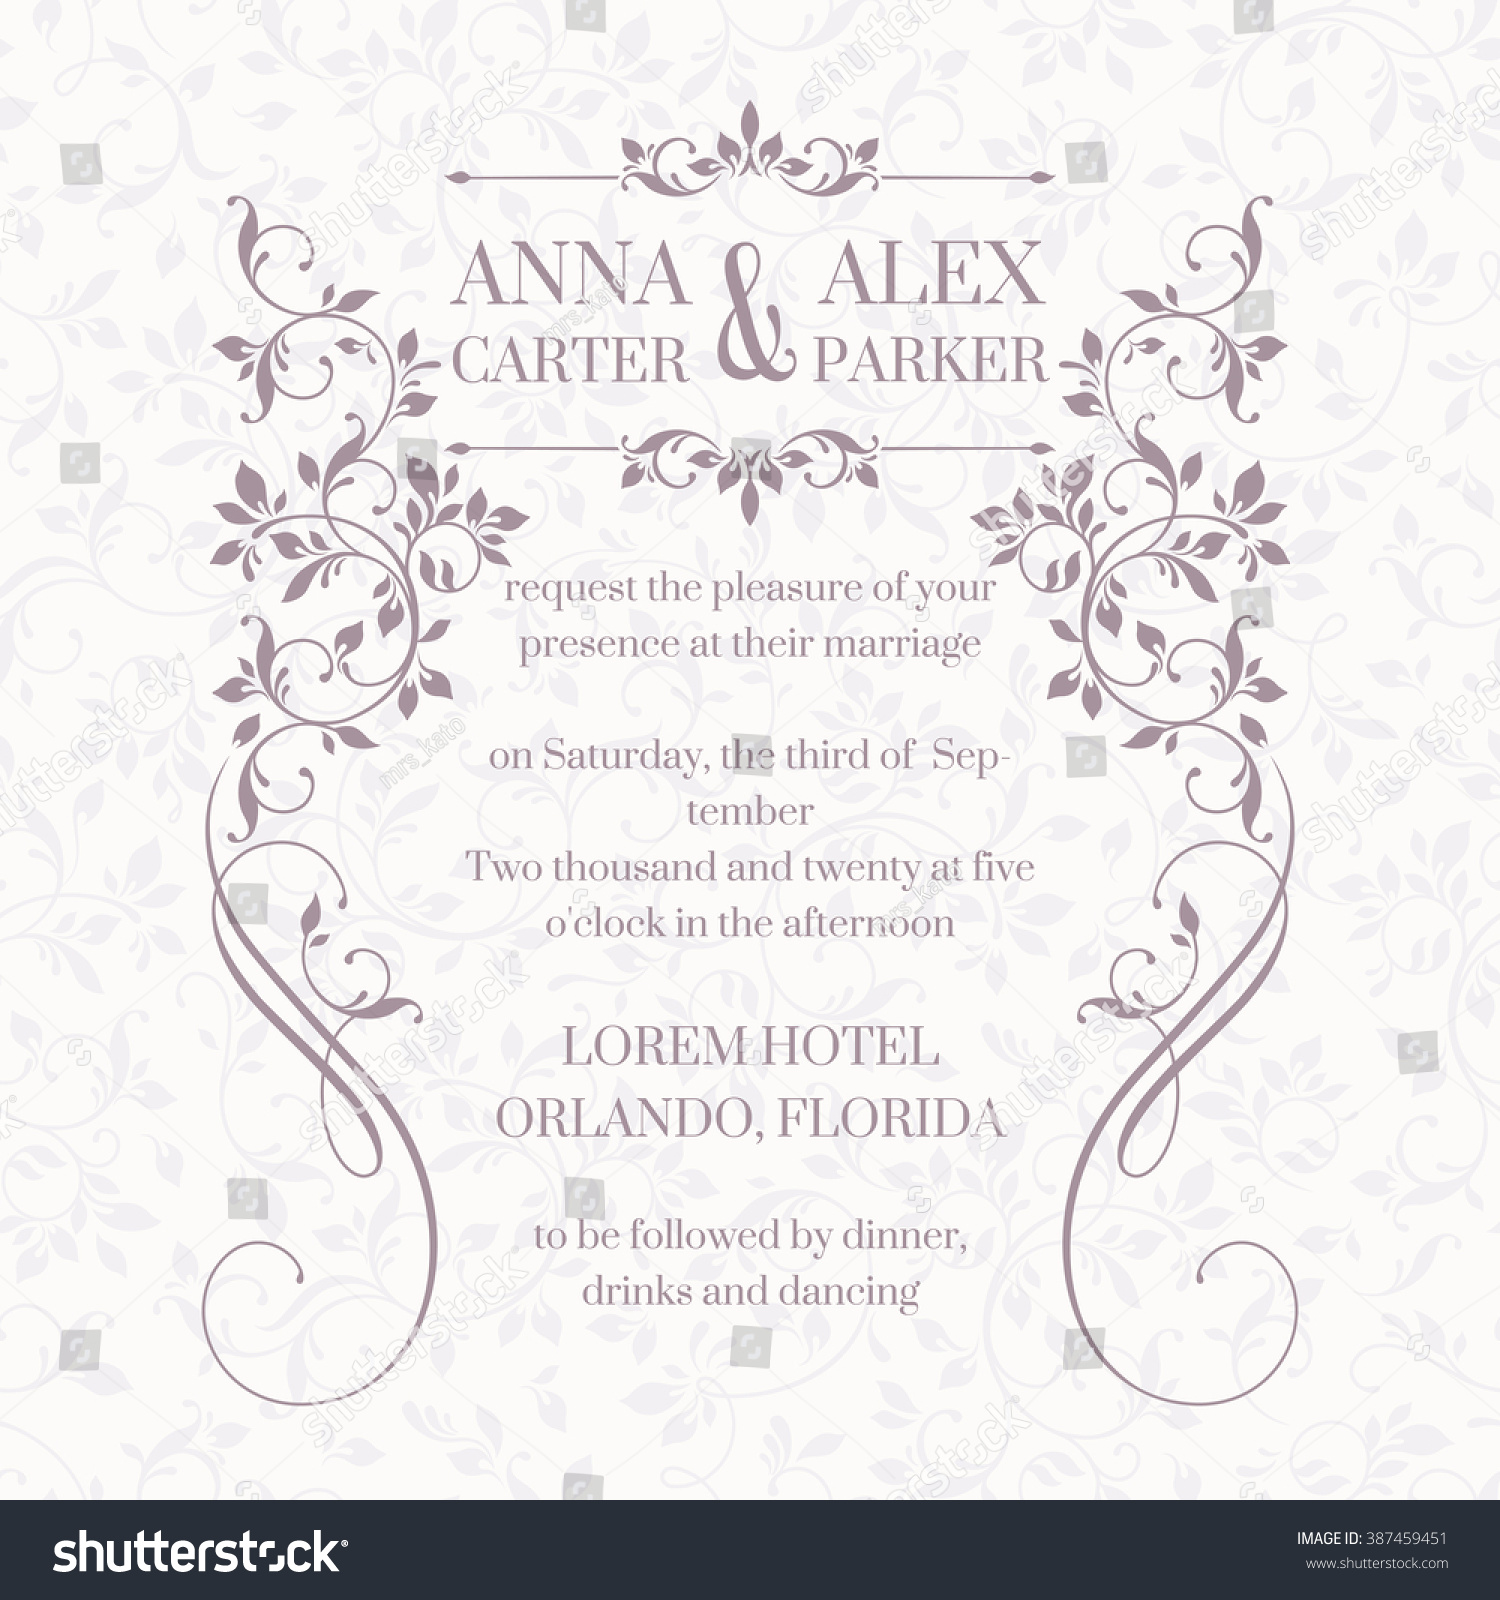 Wedding Invitation Design Classic Cards Decorative Vector – Classic Wedding Invitation Designs